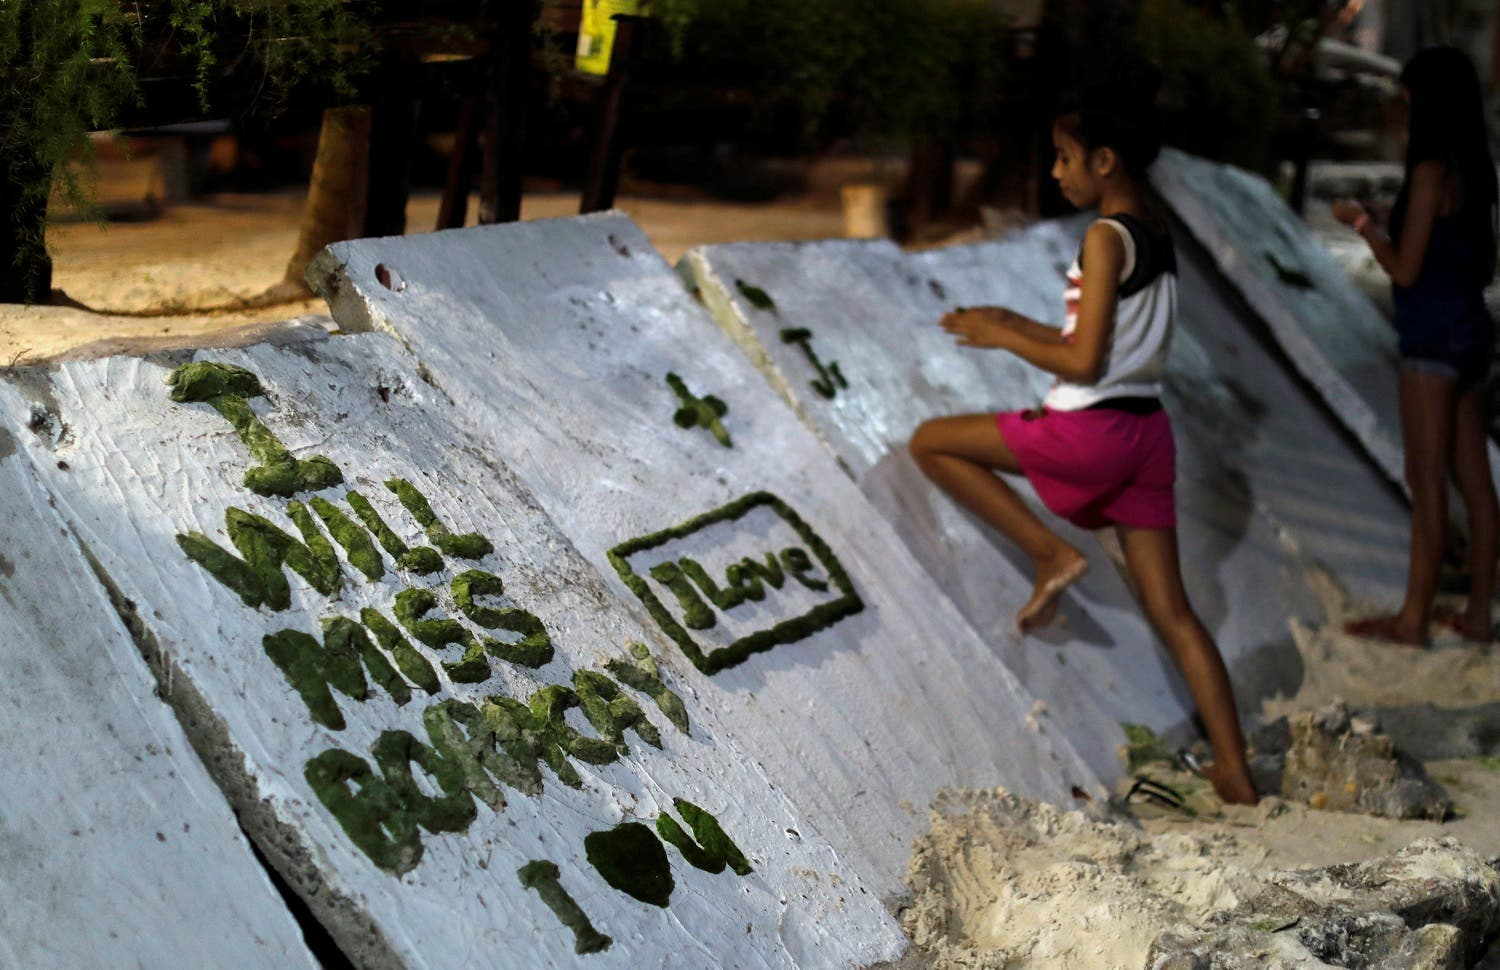 A girl scribbles on a wall two days before the temporary closure of the holiday island Boracay, in the Philippines. (Reuters)